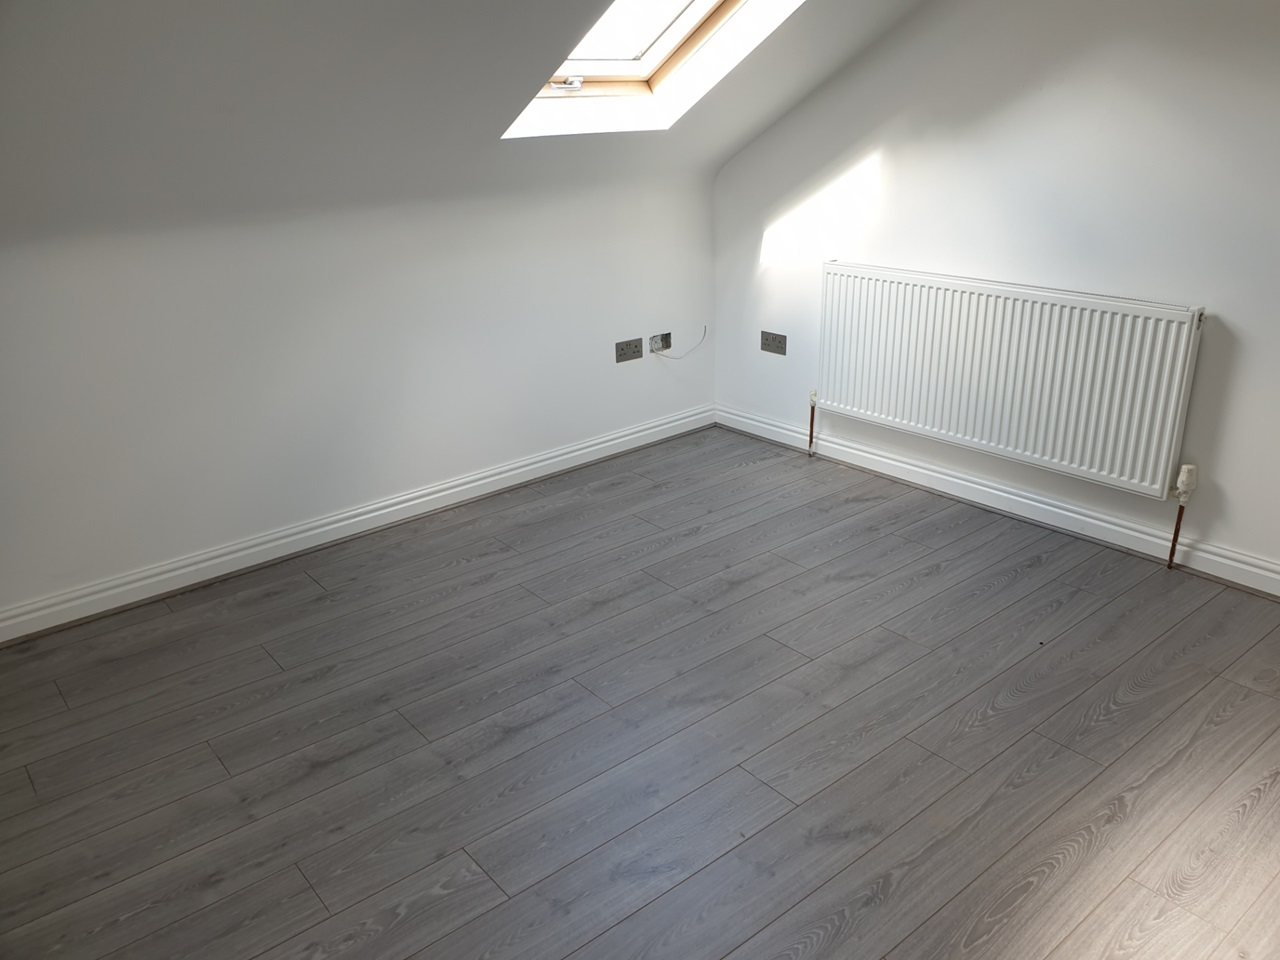 Birmingham - 1 Bed Flat, Moseley, B13 - To Rent Now for £ ...